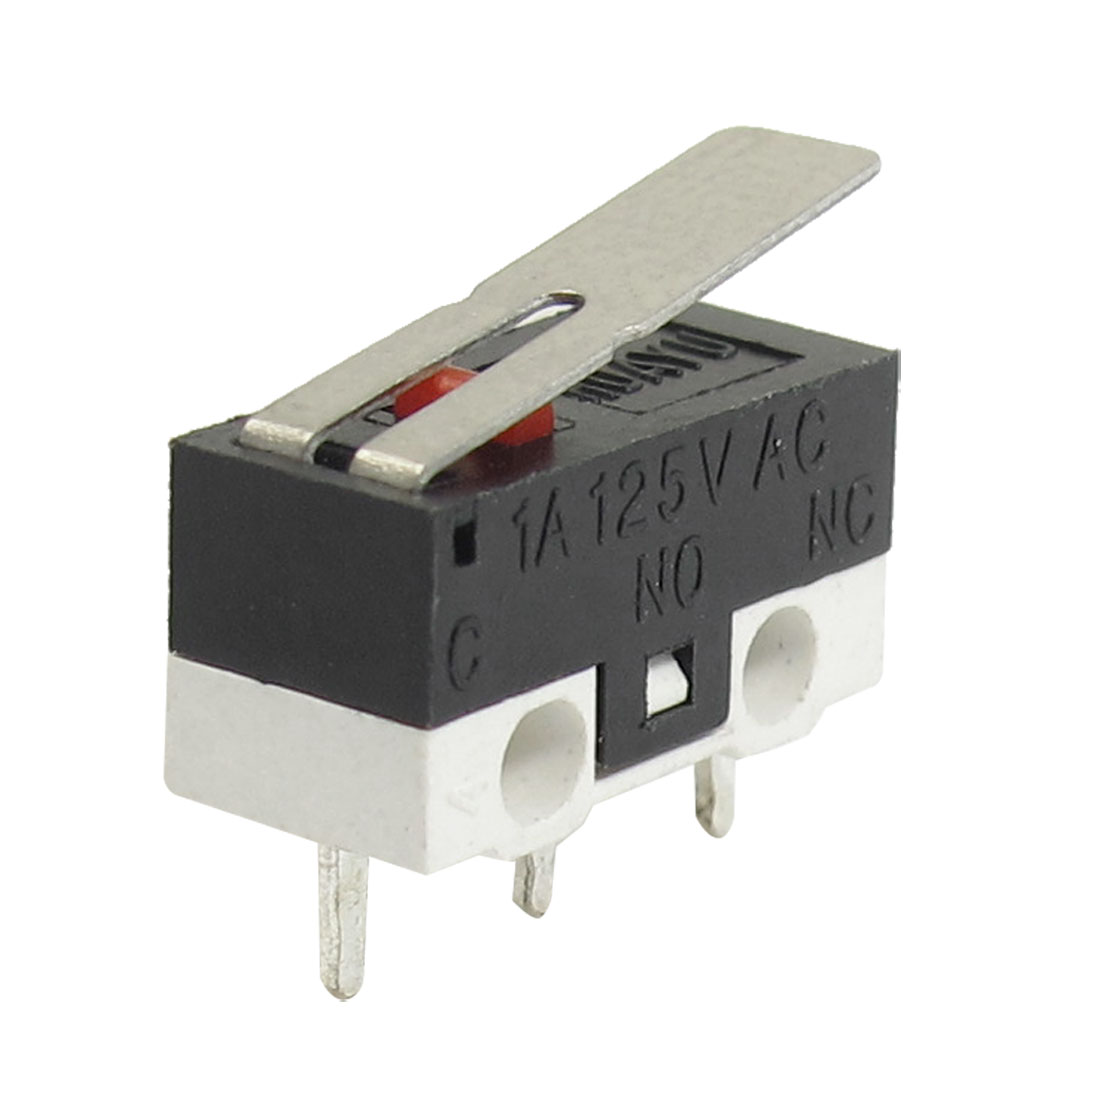 10-Pieces-AC-125V-1A-SPDT-1NO-1NC-Momentary-Long-Hinge-Lever-Micro-Switch